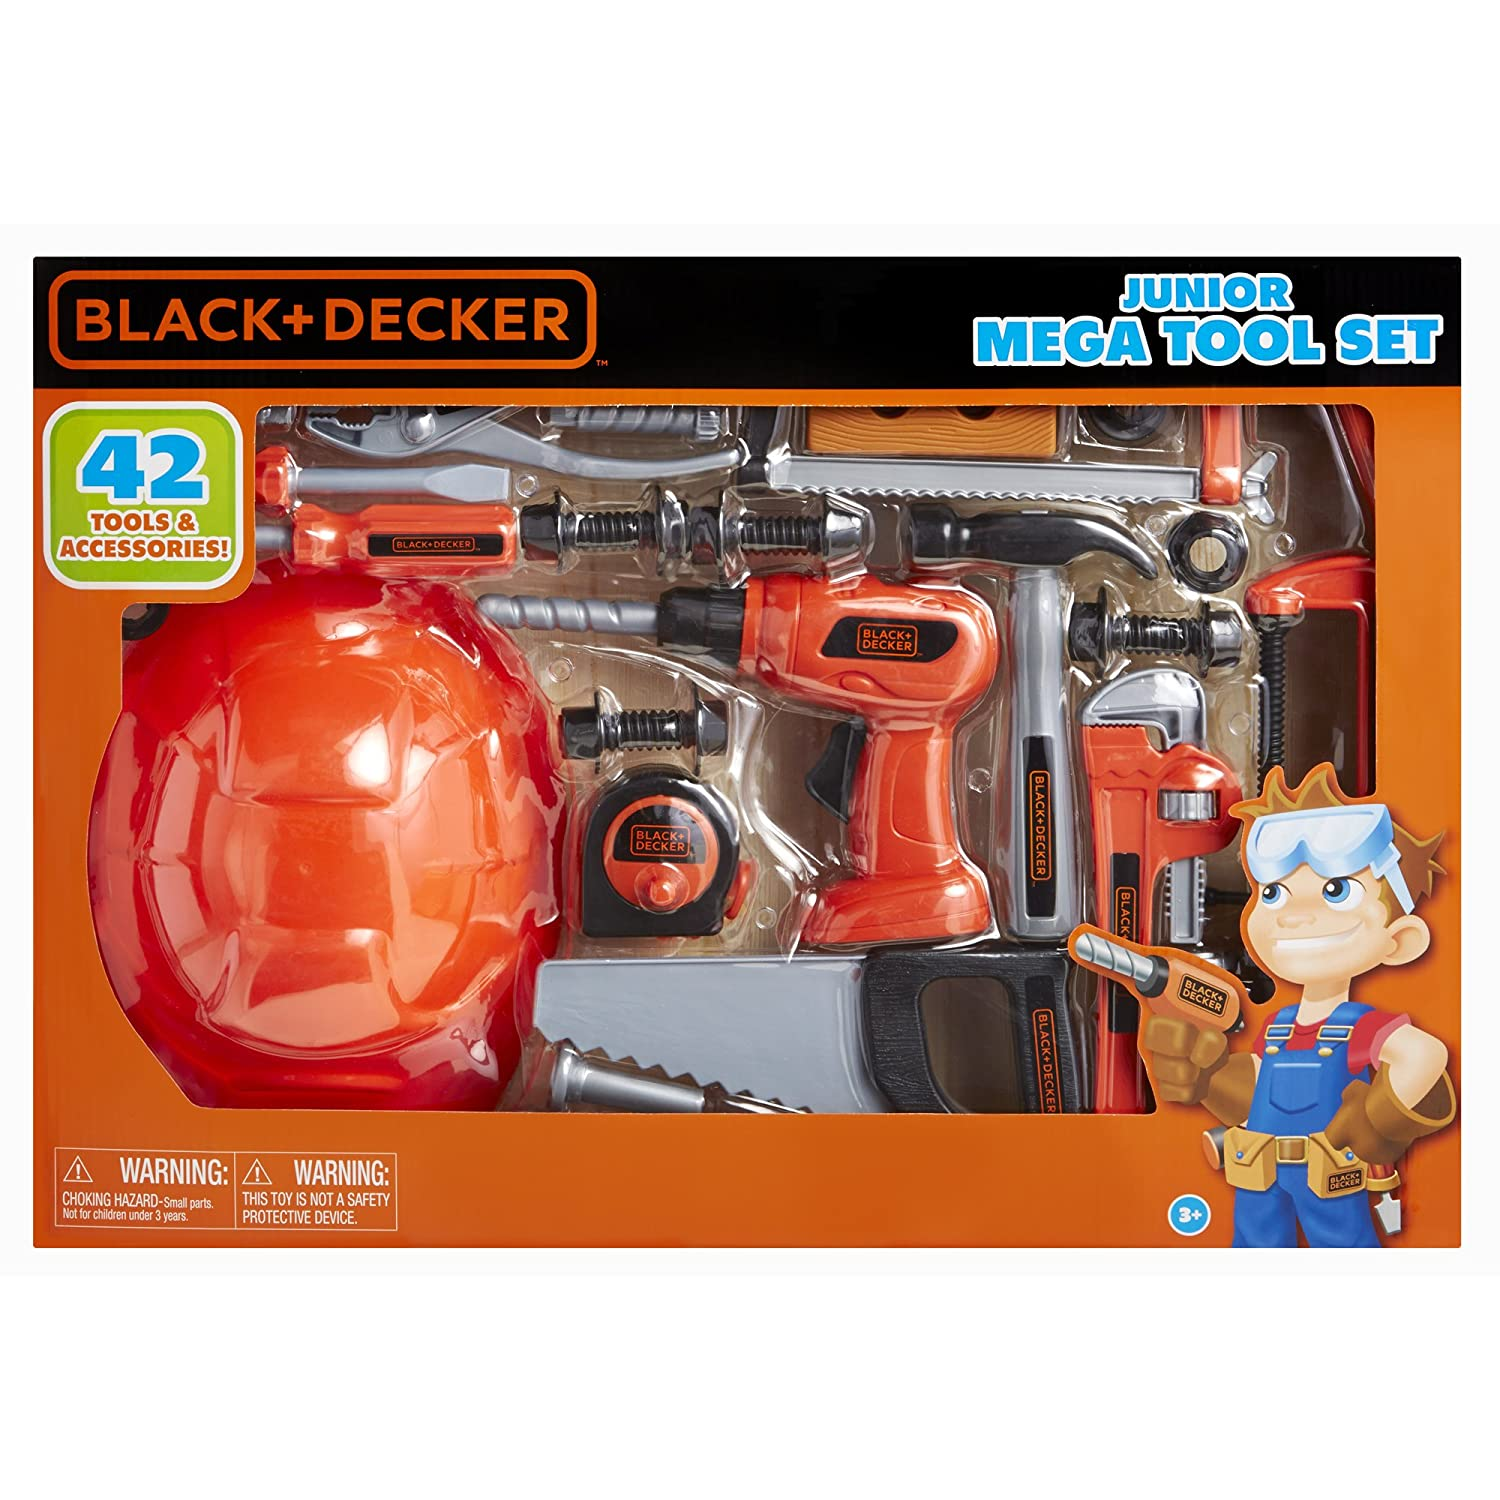 Black & Decker Jr. Mega Tool Set - 42 Tools & Accessories!